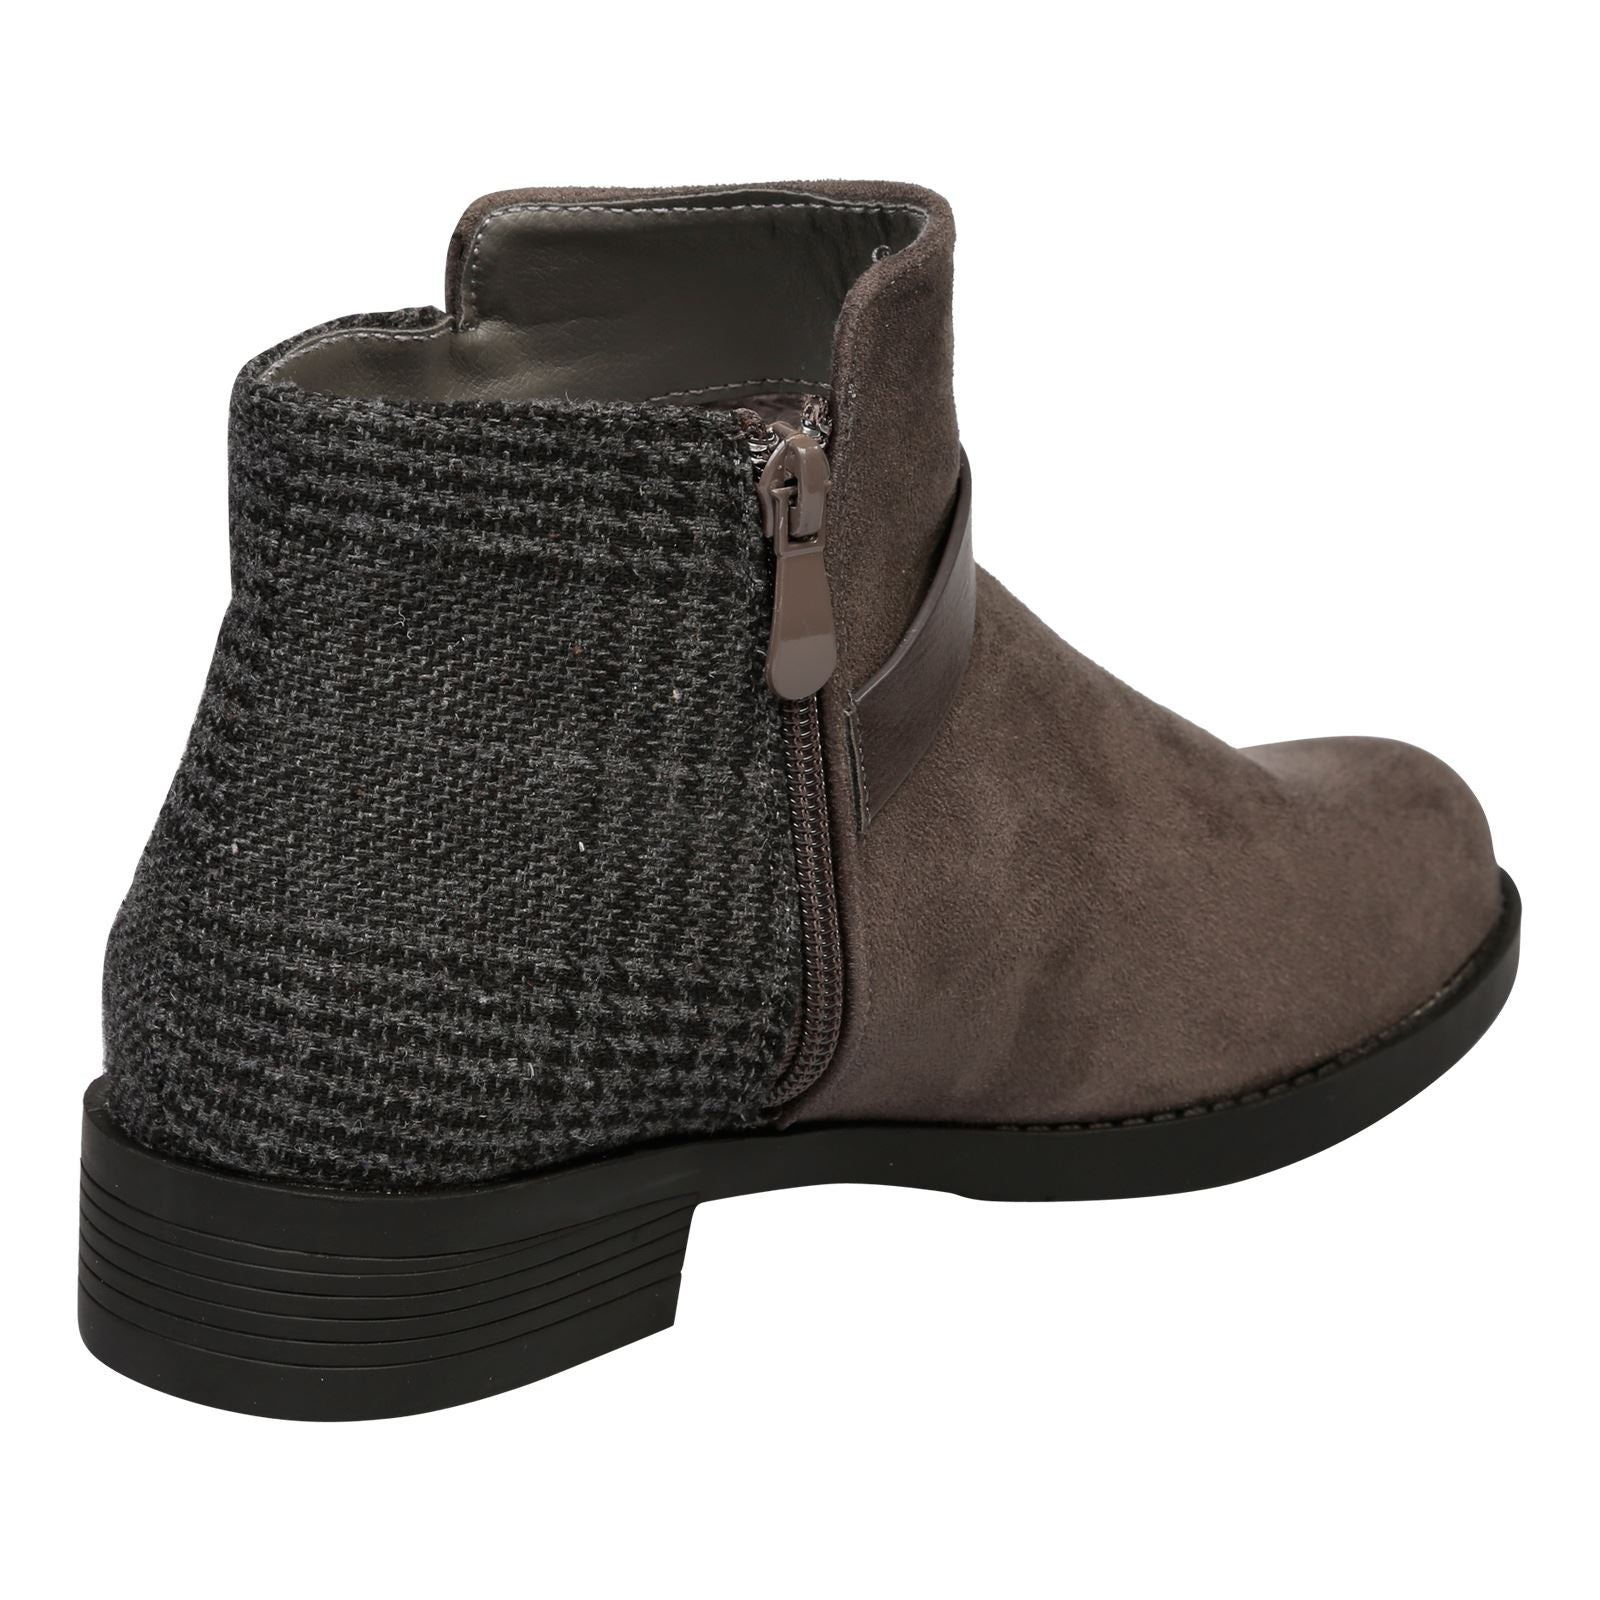 Hailee Houndstooth Ankle Boots in Grey - Feet First Fashion